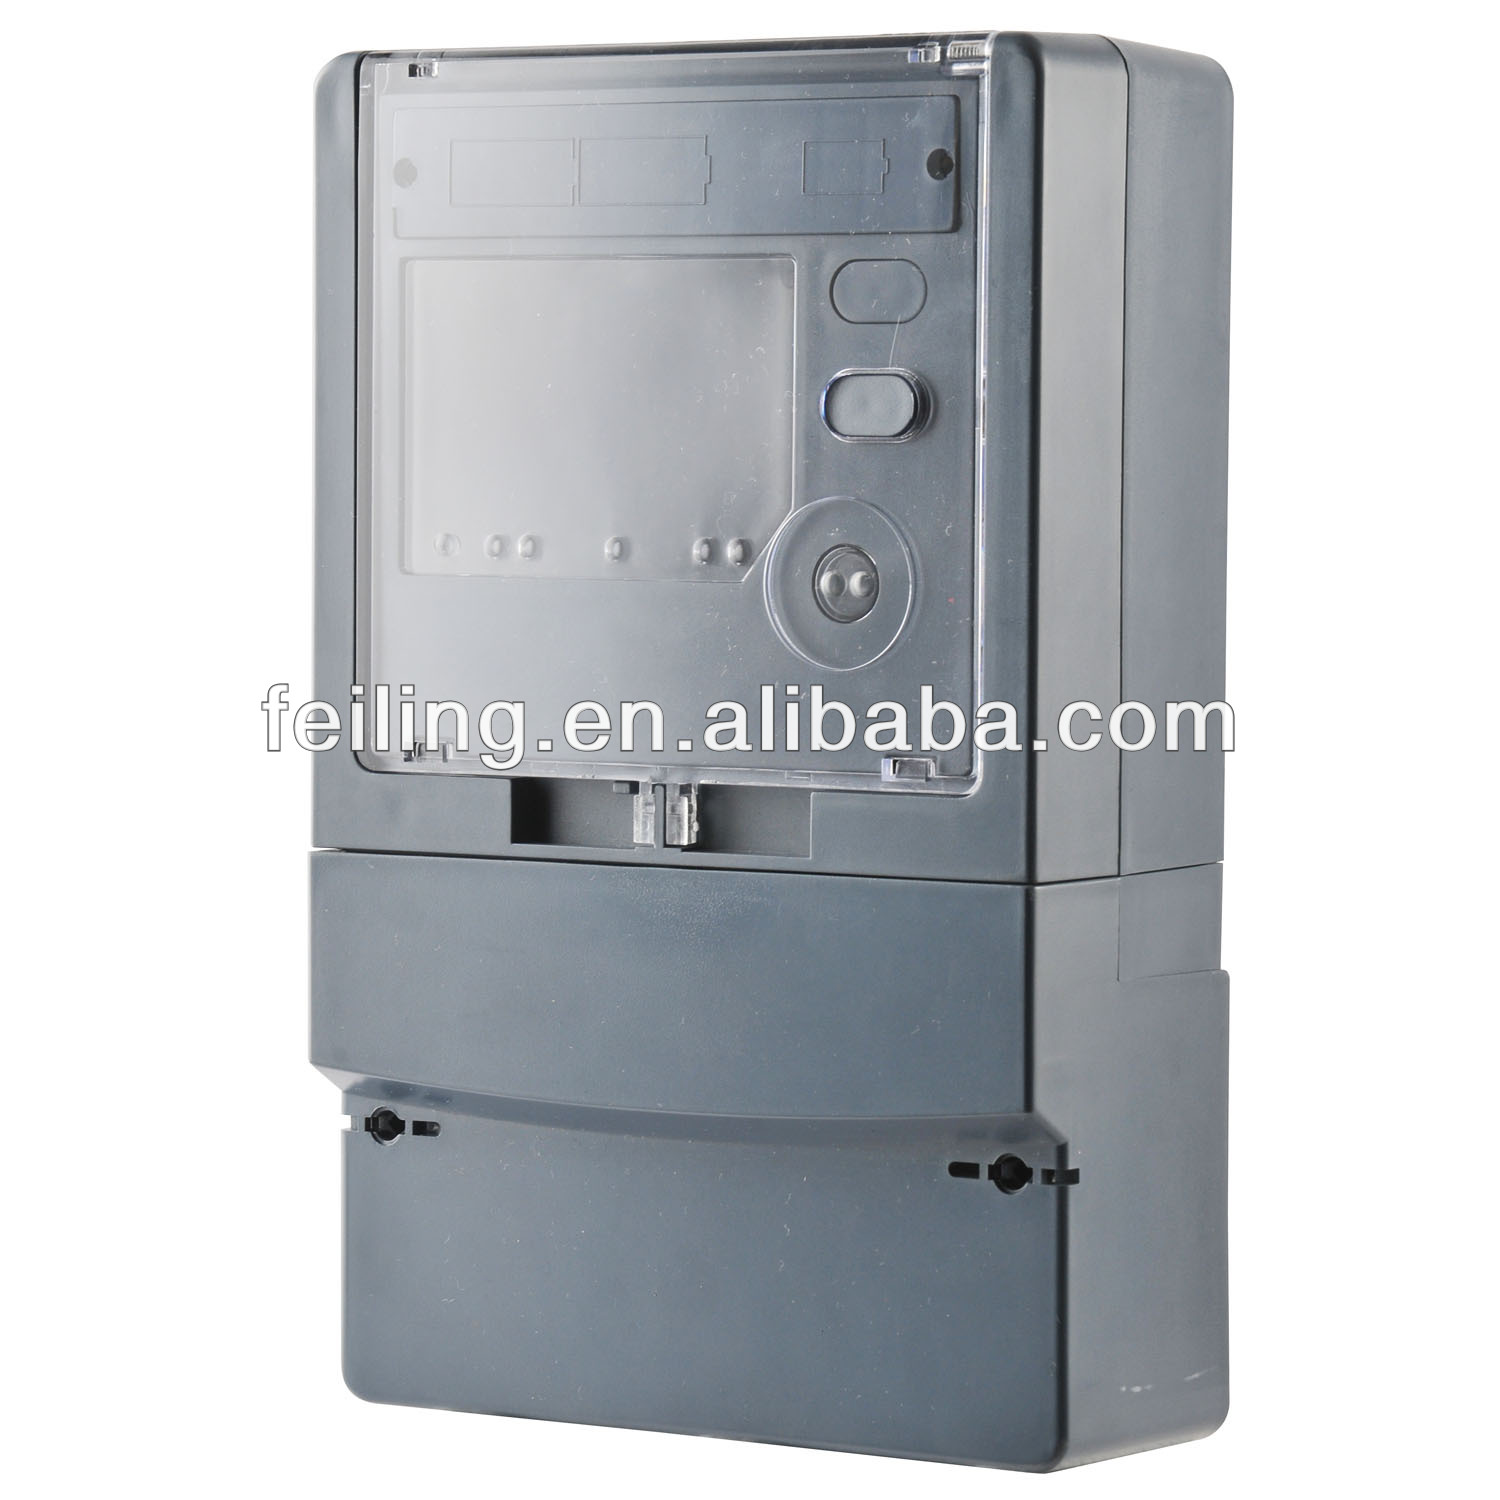 China supplier smart meter Cixi feiling DTSD-036 Three-phase electrical junction box